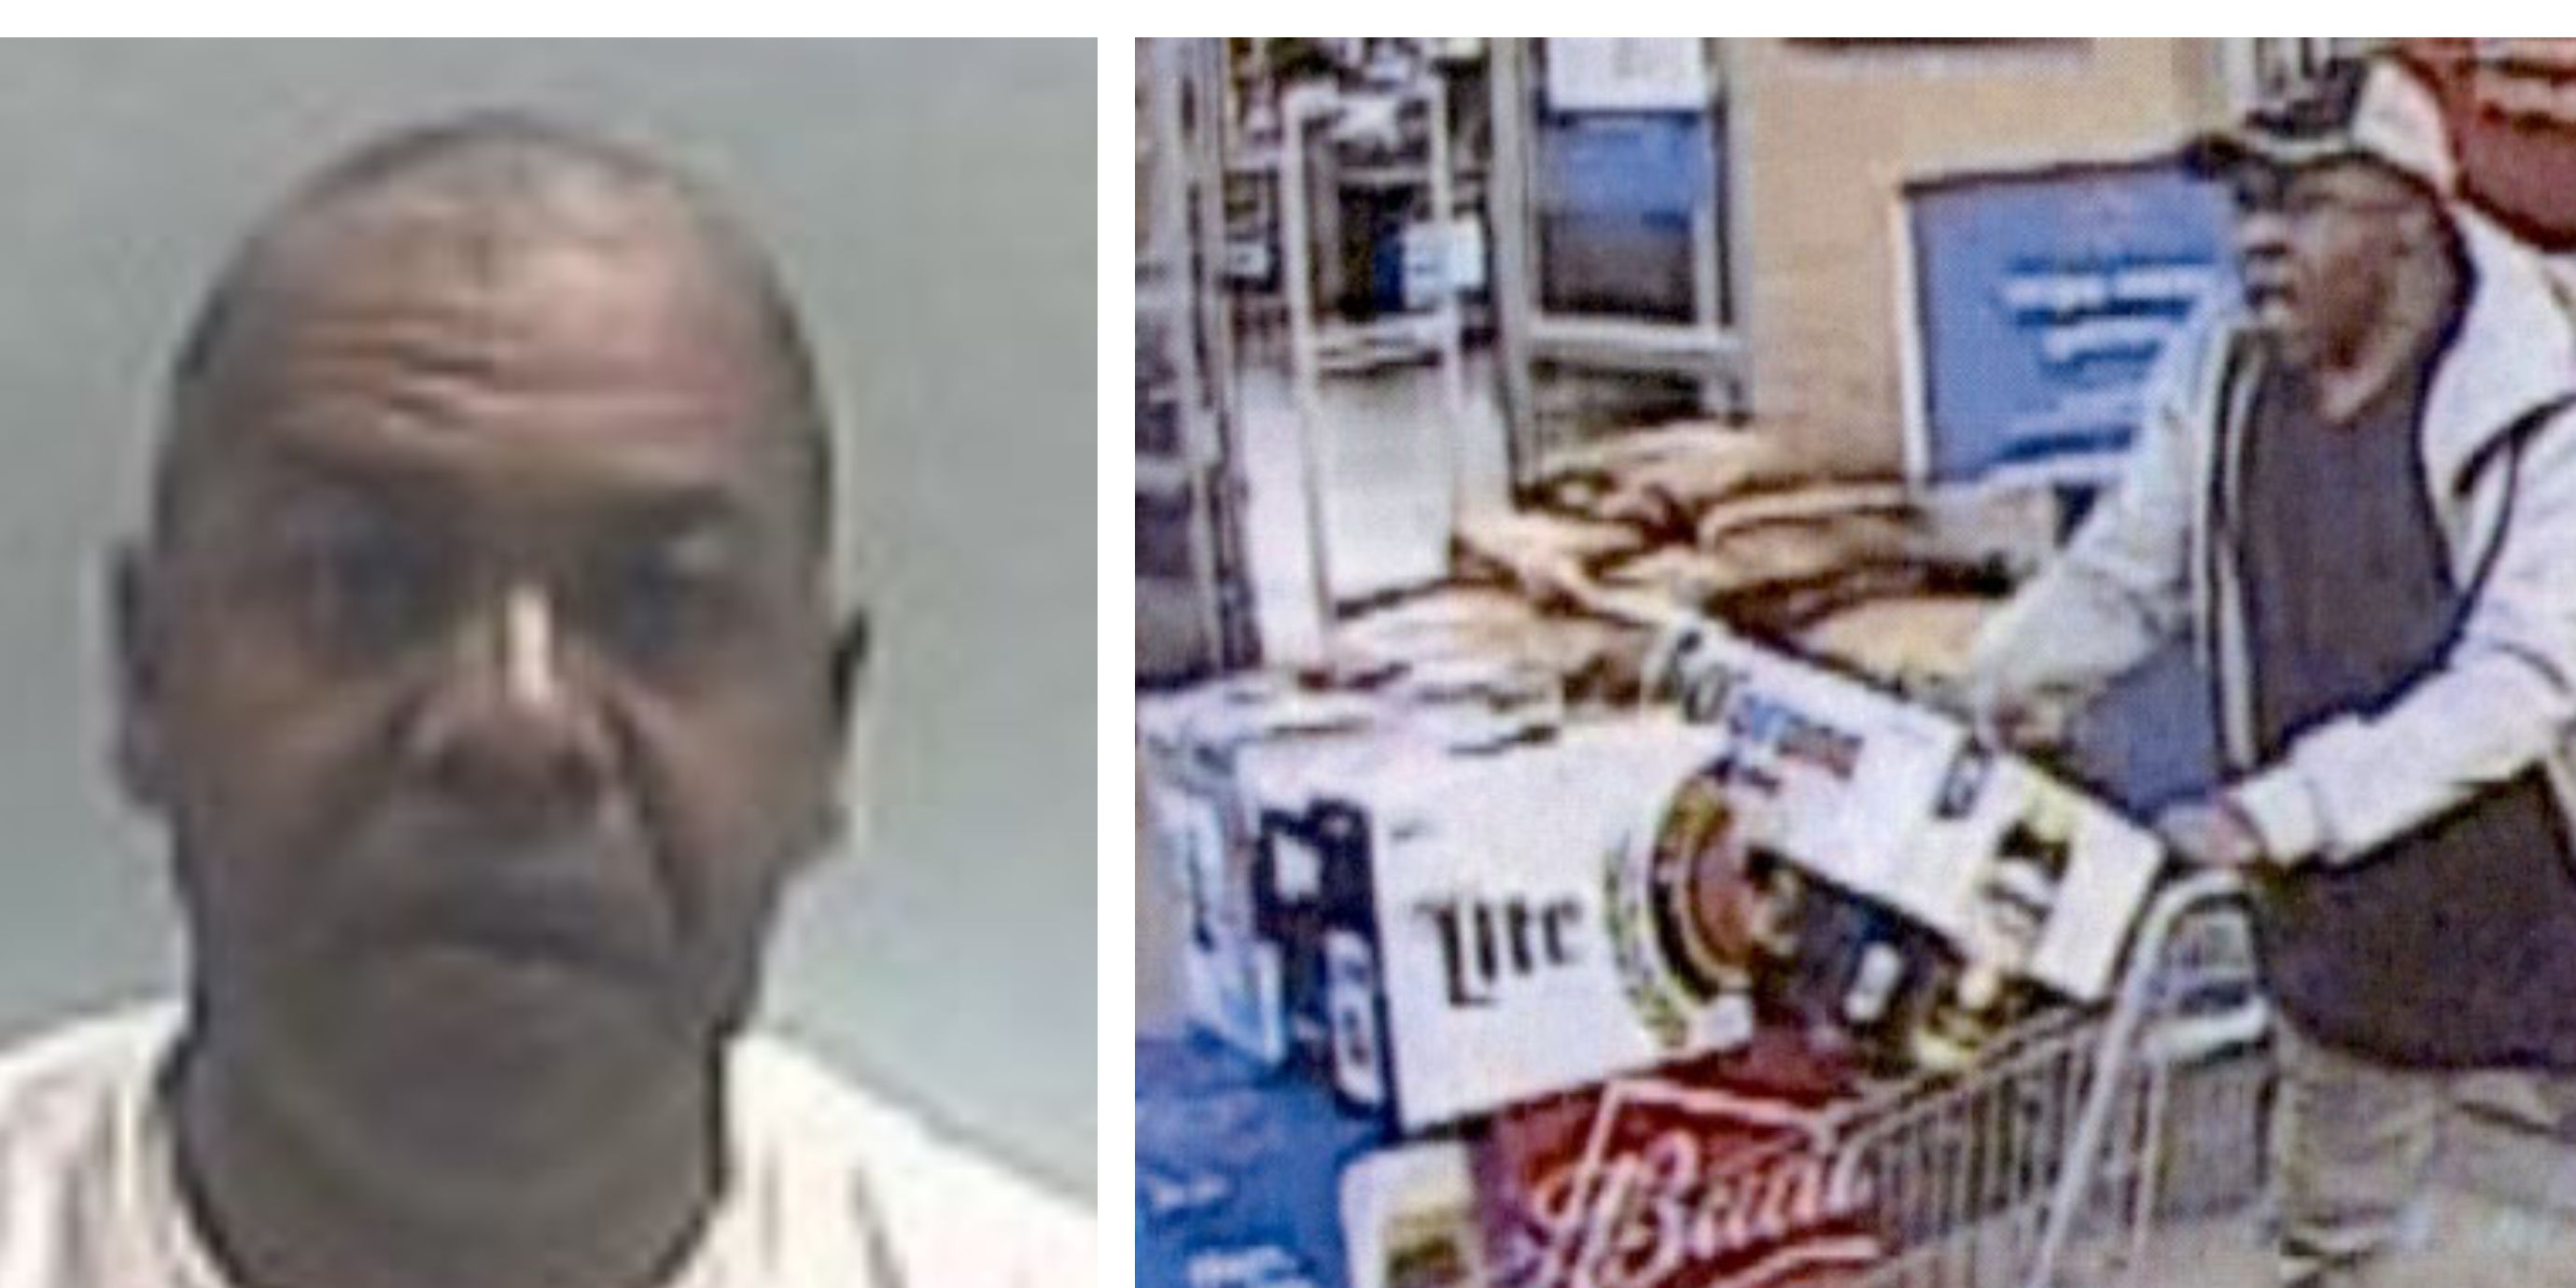 Police think they have their beer theft suspect